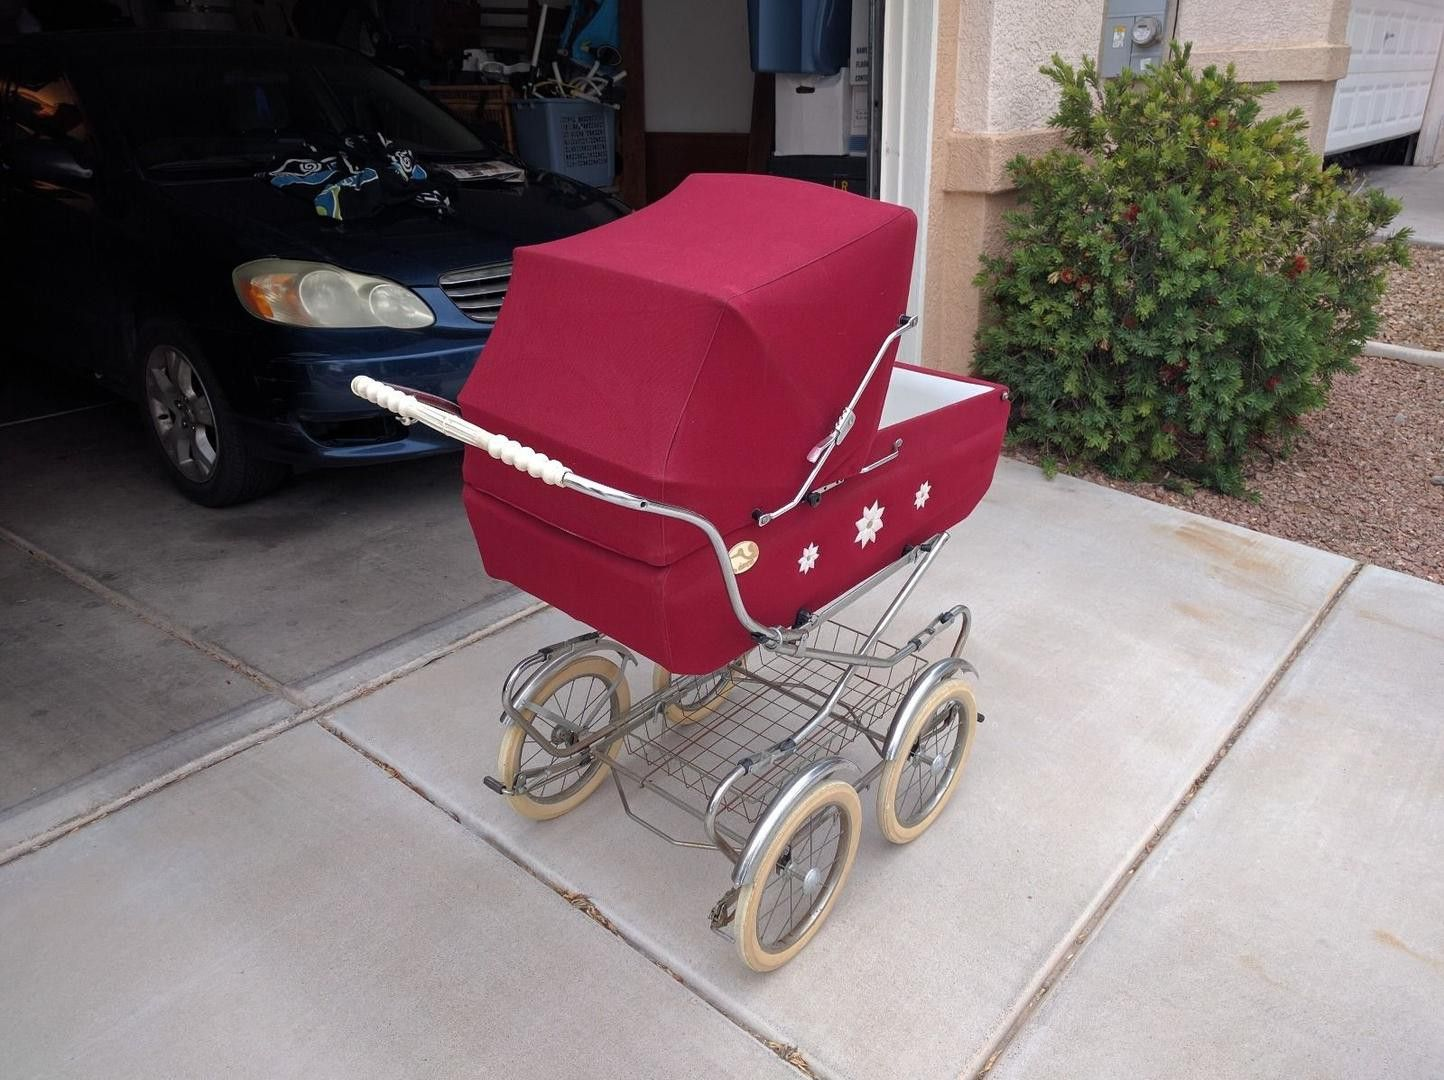 Peg La Cicogna Baby carriage, Baby strollers, Prams